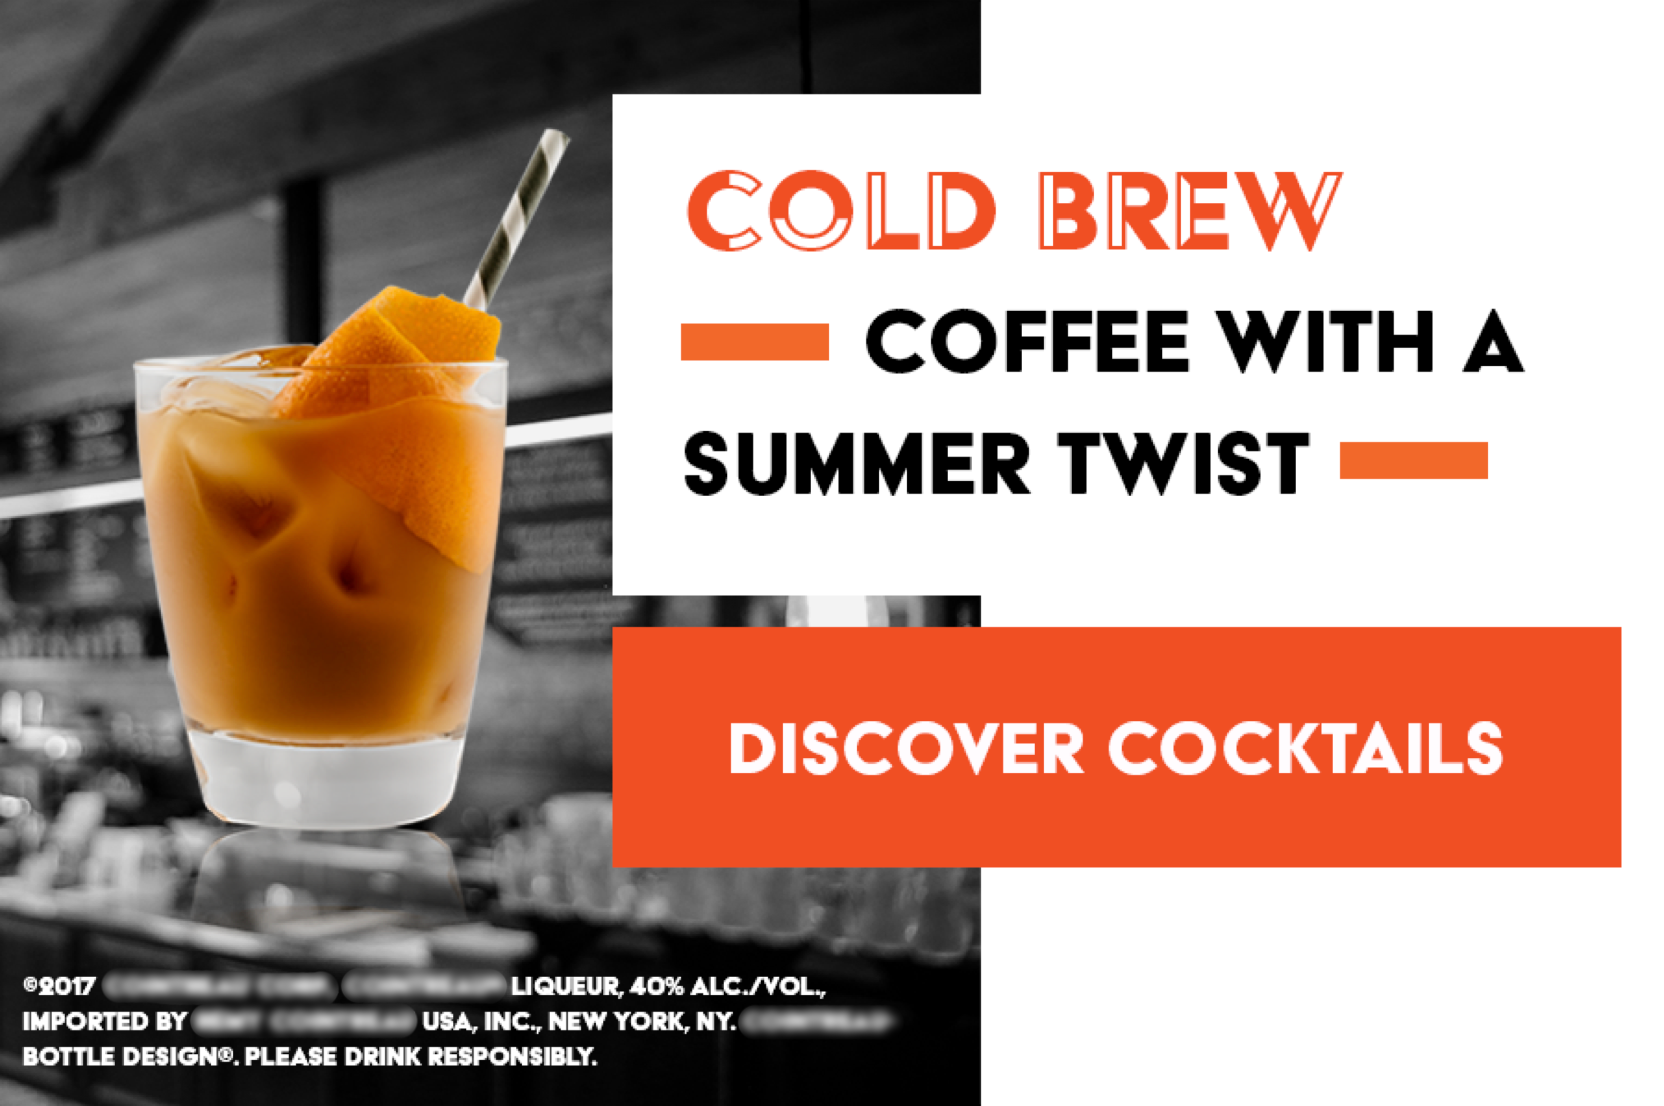 Discover Cocktails Cold Brew Pairings Unit